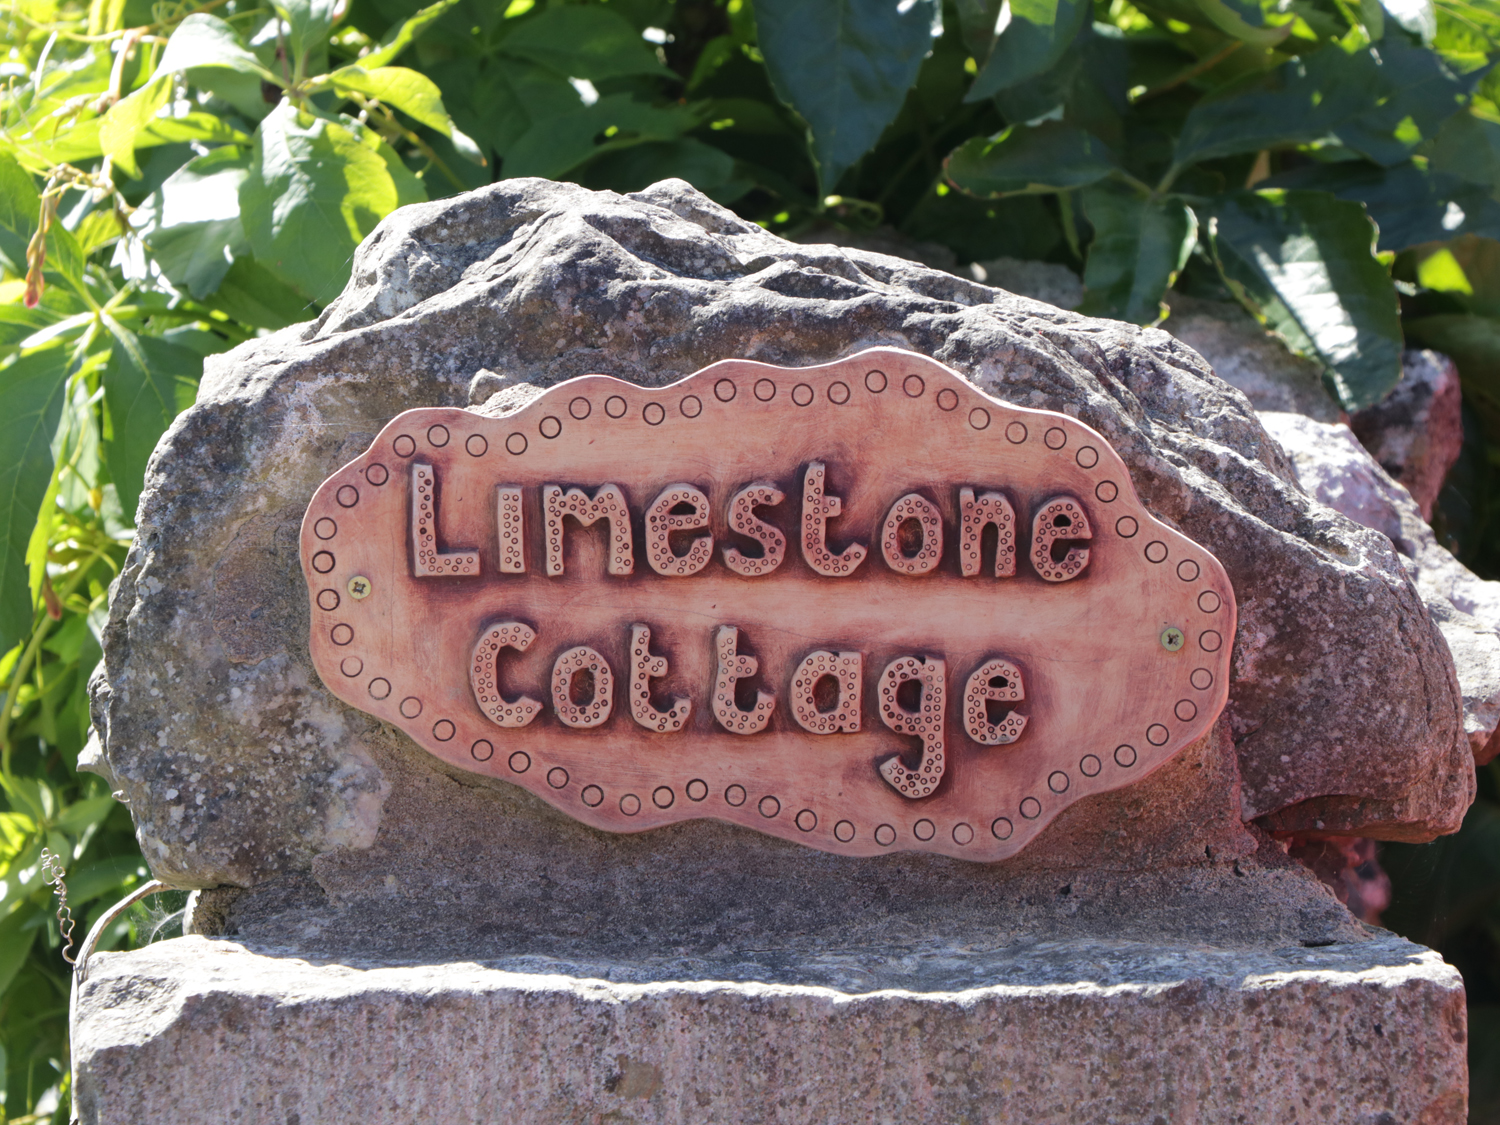 Limestone Cottage